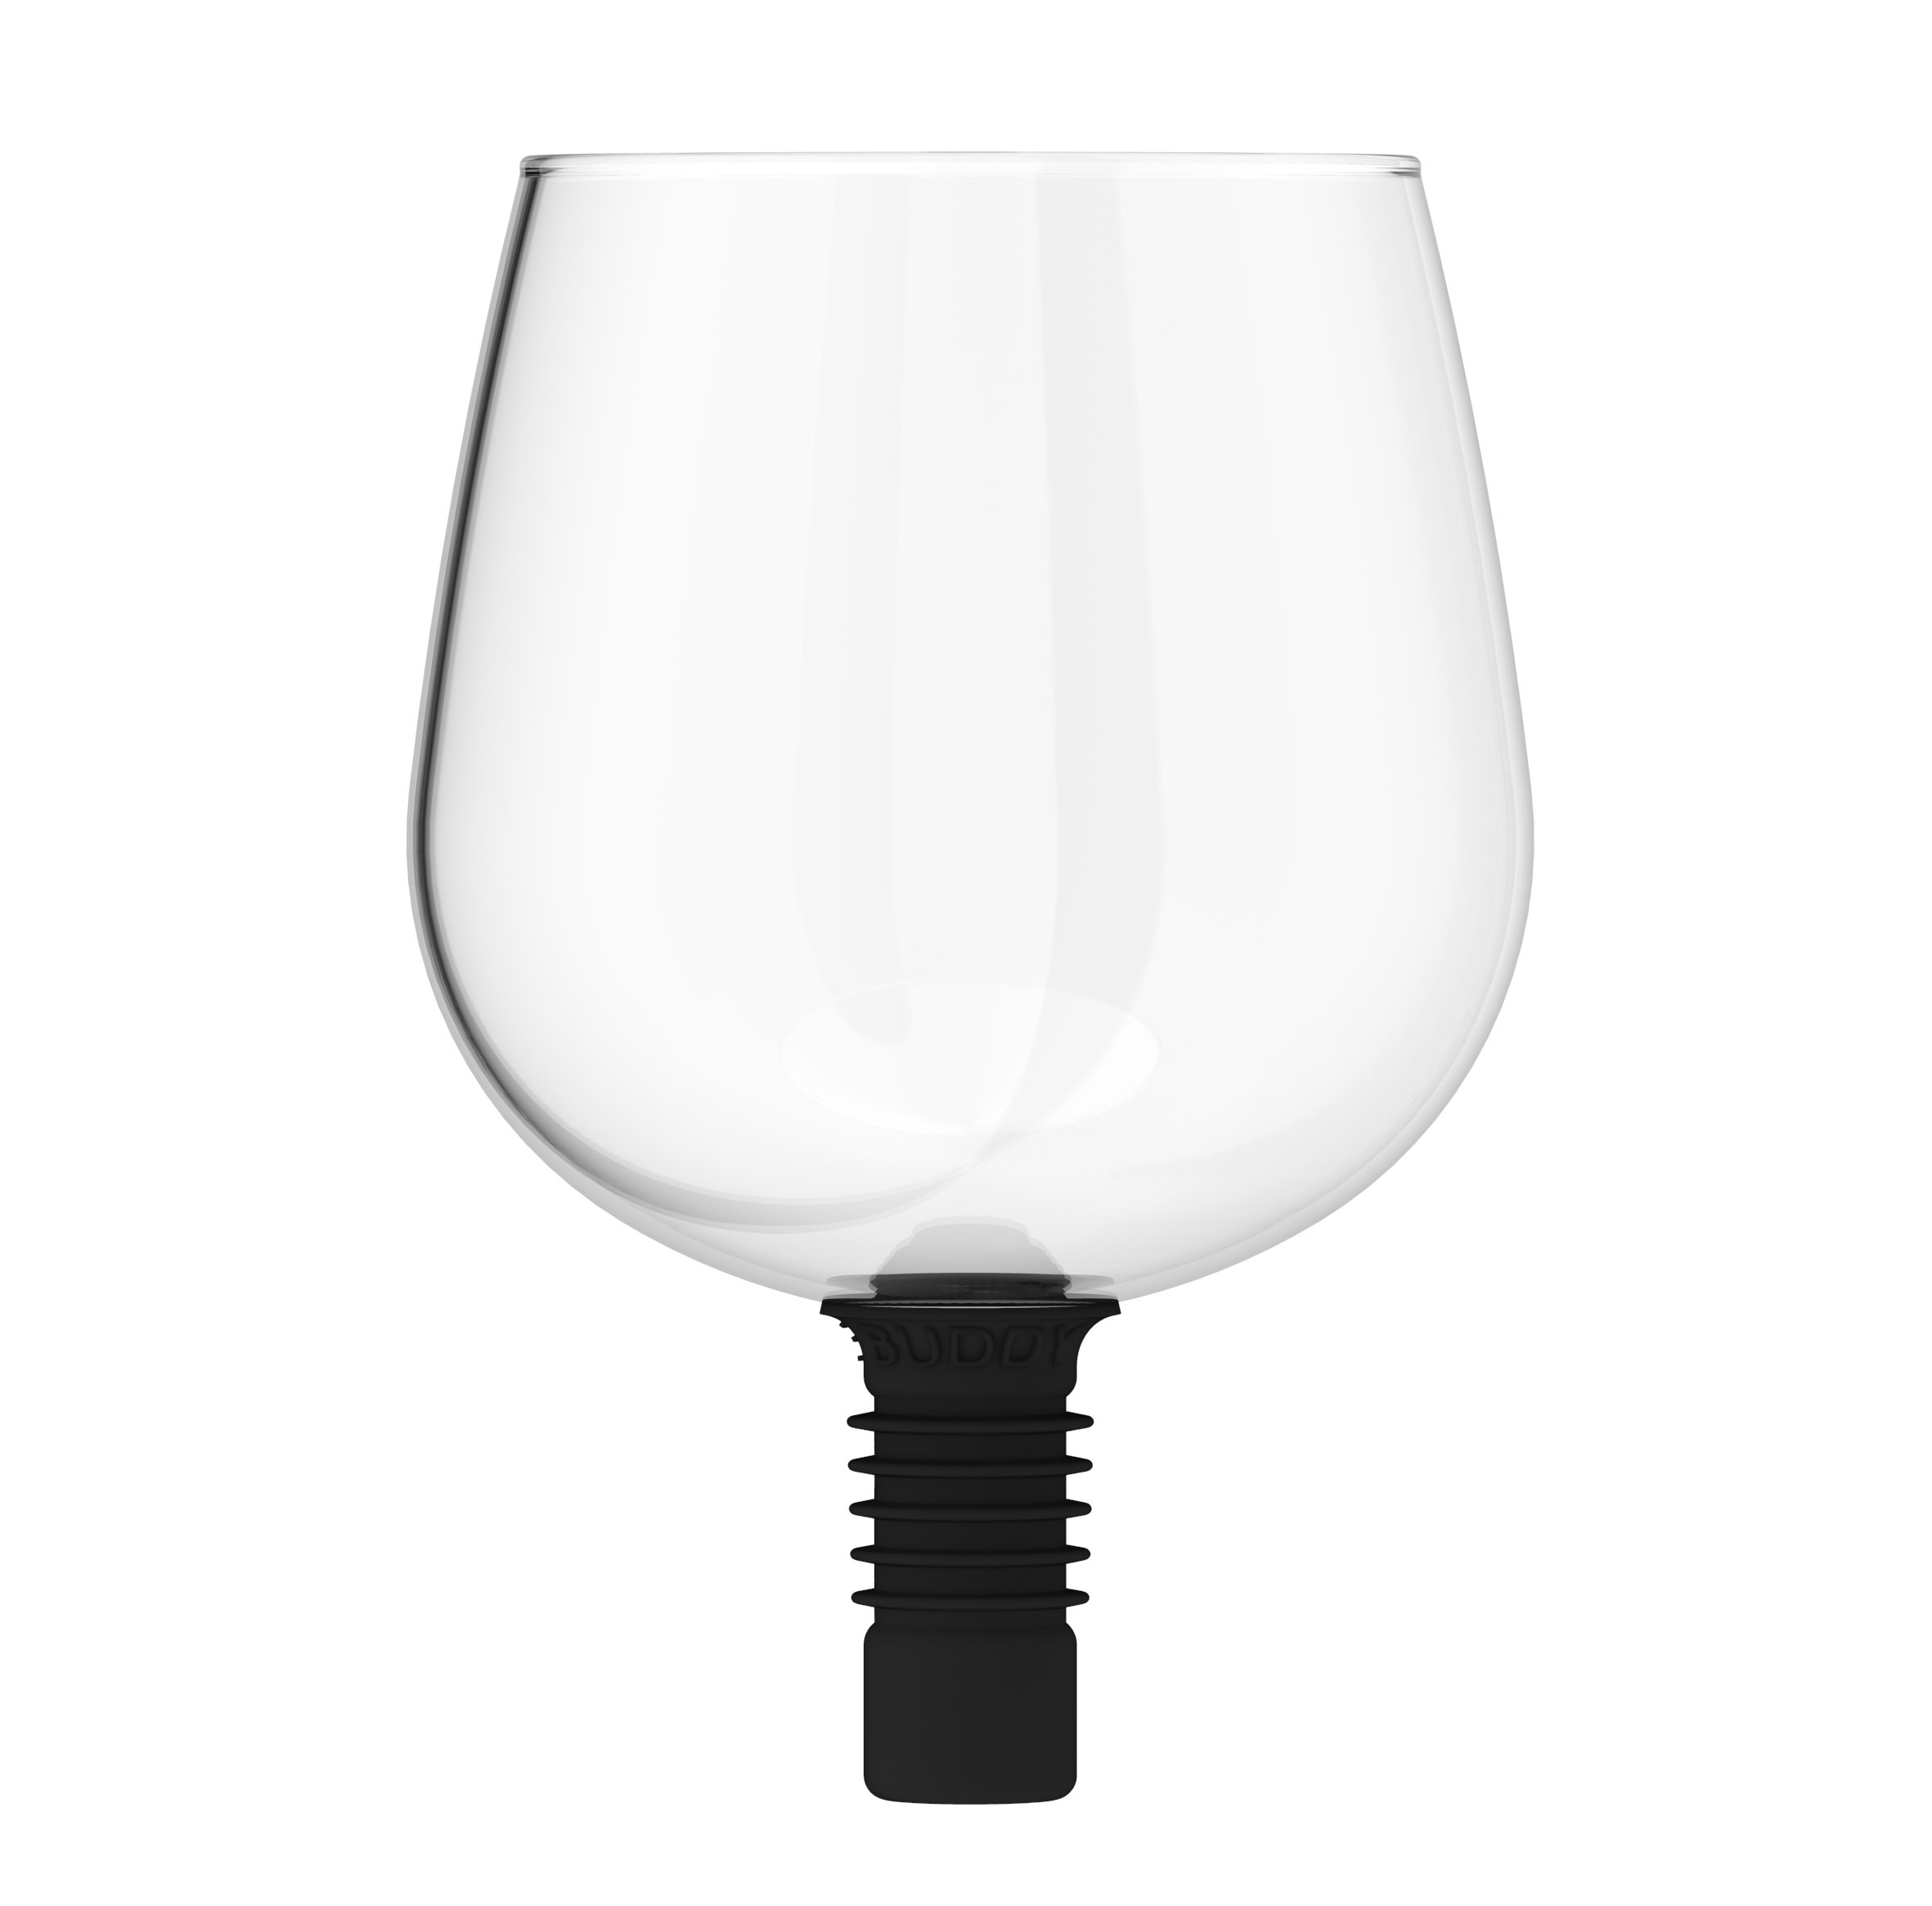 Guzzle Buddy Wine Bottle Glass 16 Oz, It Turns Your Bottle of Wine Into Your Wine Glass-The Original, As seen on Shark Tank